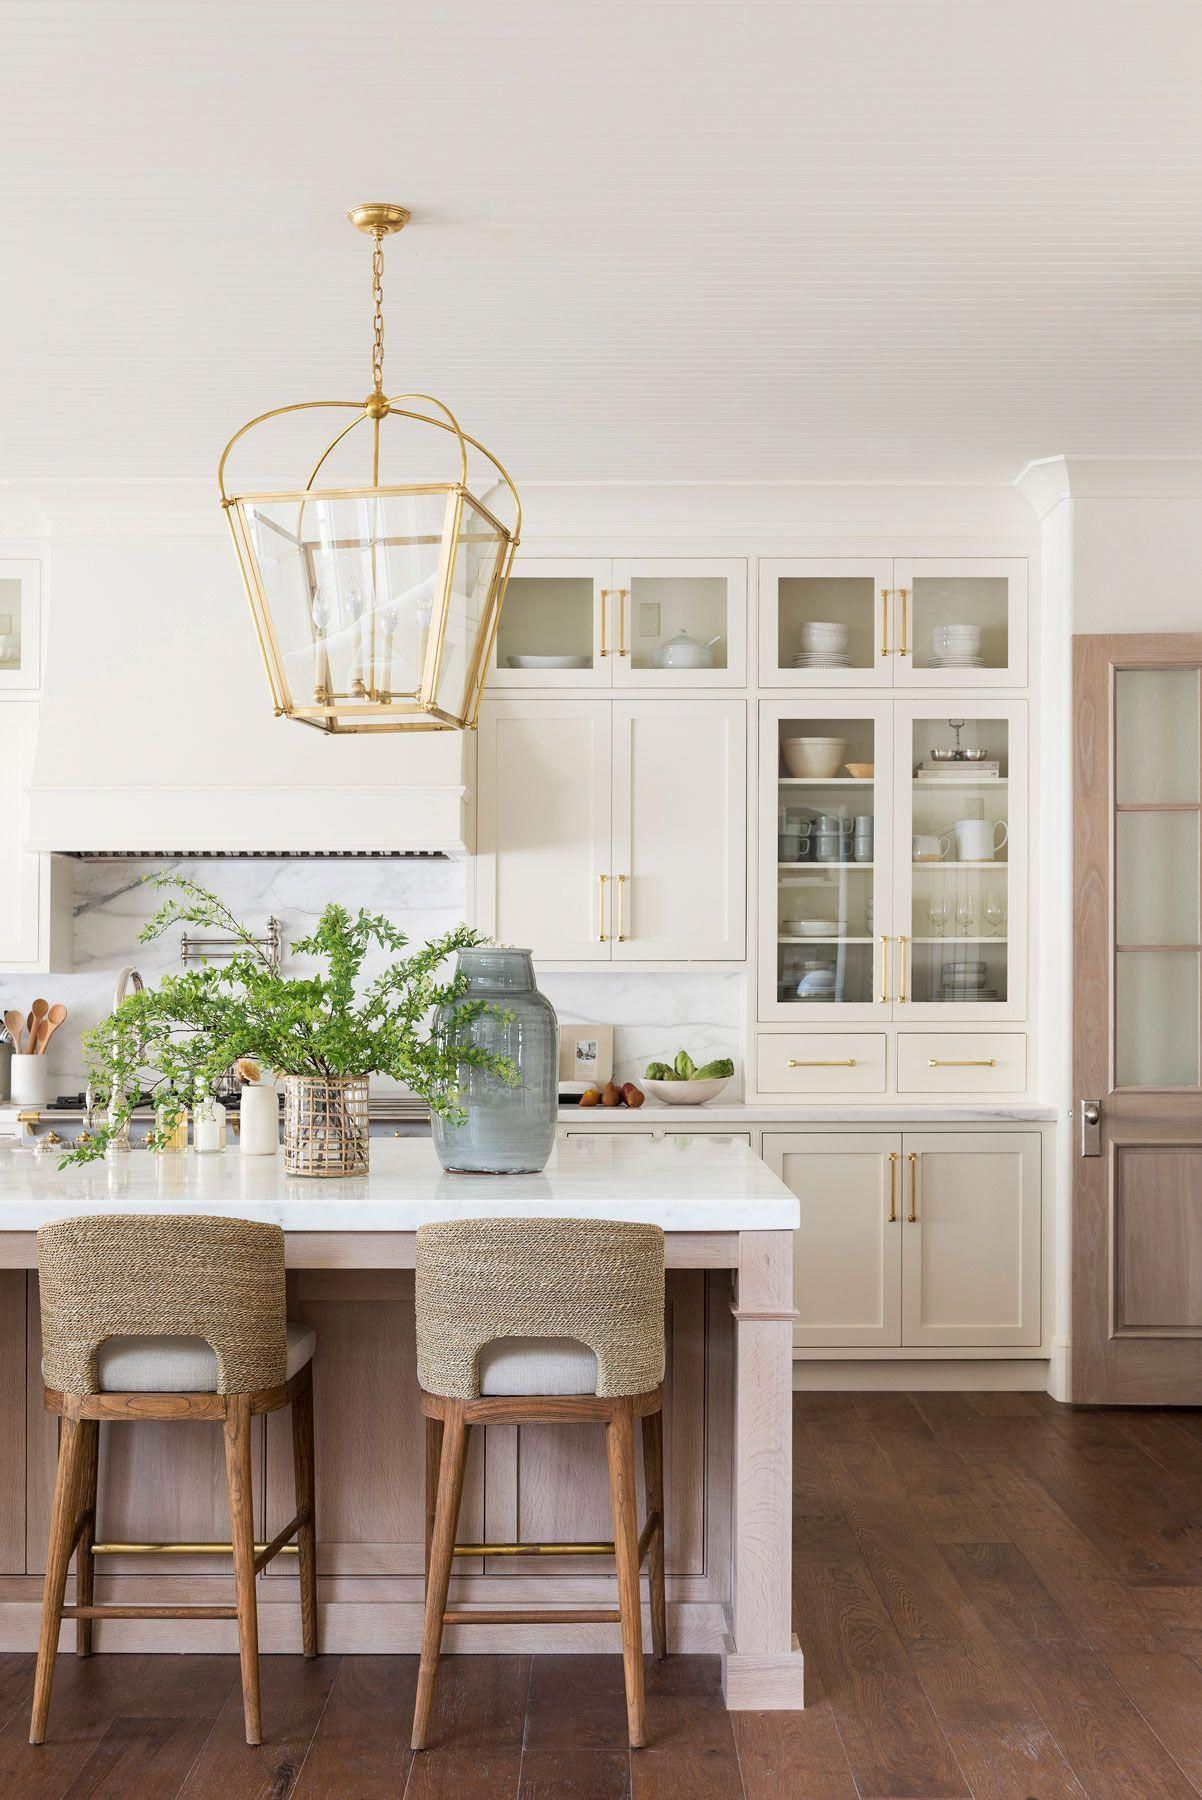 The Best Mushroom Paint Colors For Your Kitchen Light Mushroom Kitchen Cabinets The Ident Glass Kitchen Cabinet Doors Glass Kitchen Cabinets Kitchen Trends